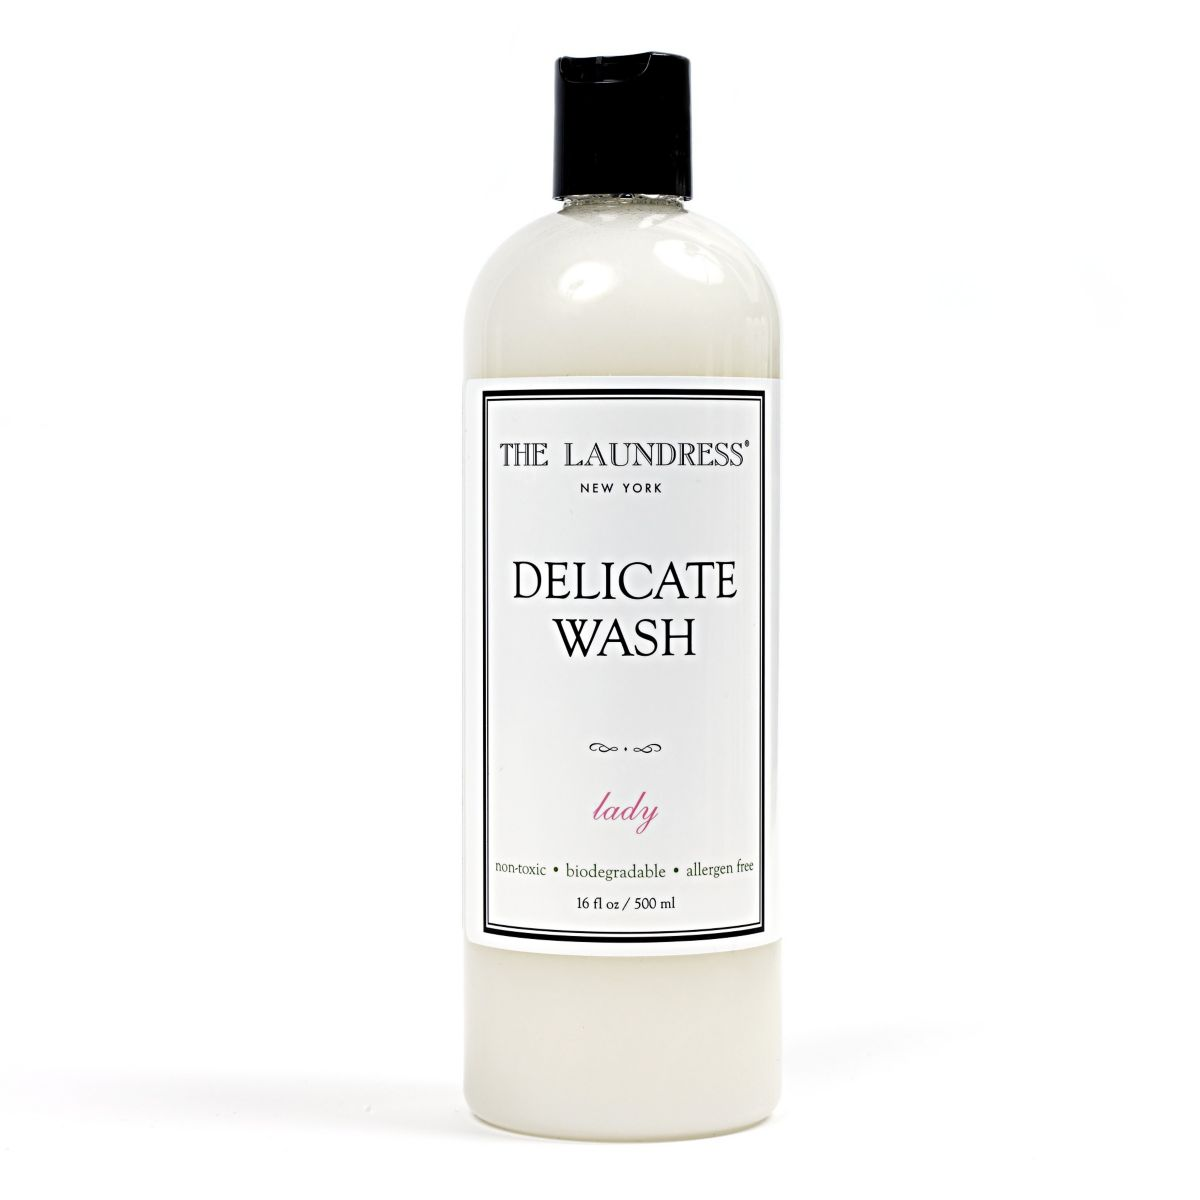 Delicate Wash By The Laundress by The Laundress